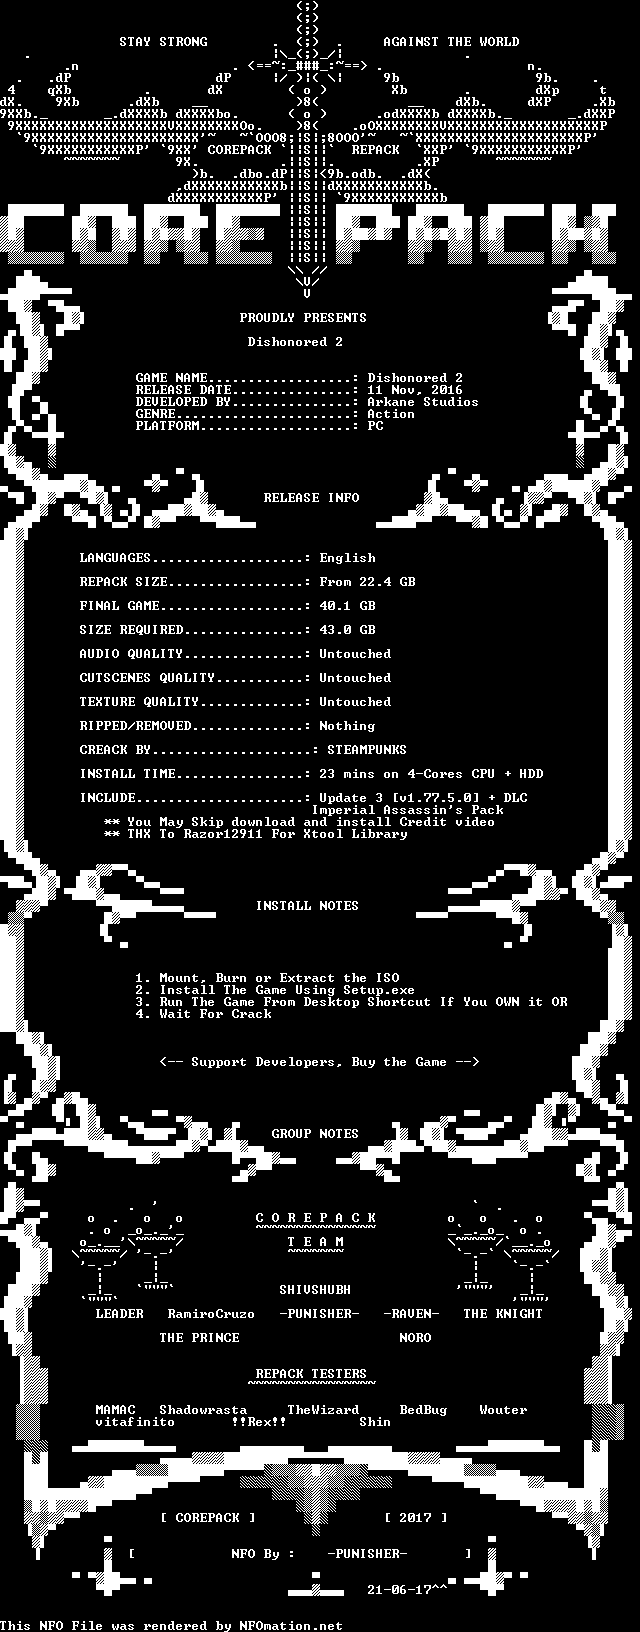 1525129400.Dishonored_2_-_CorePack.nfo.p